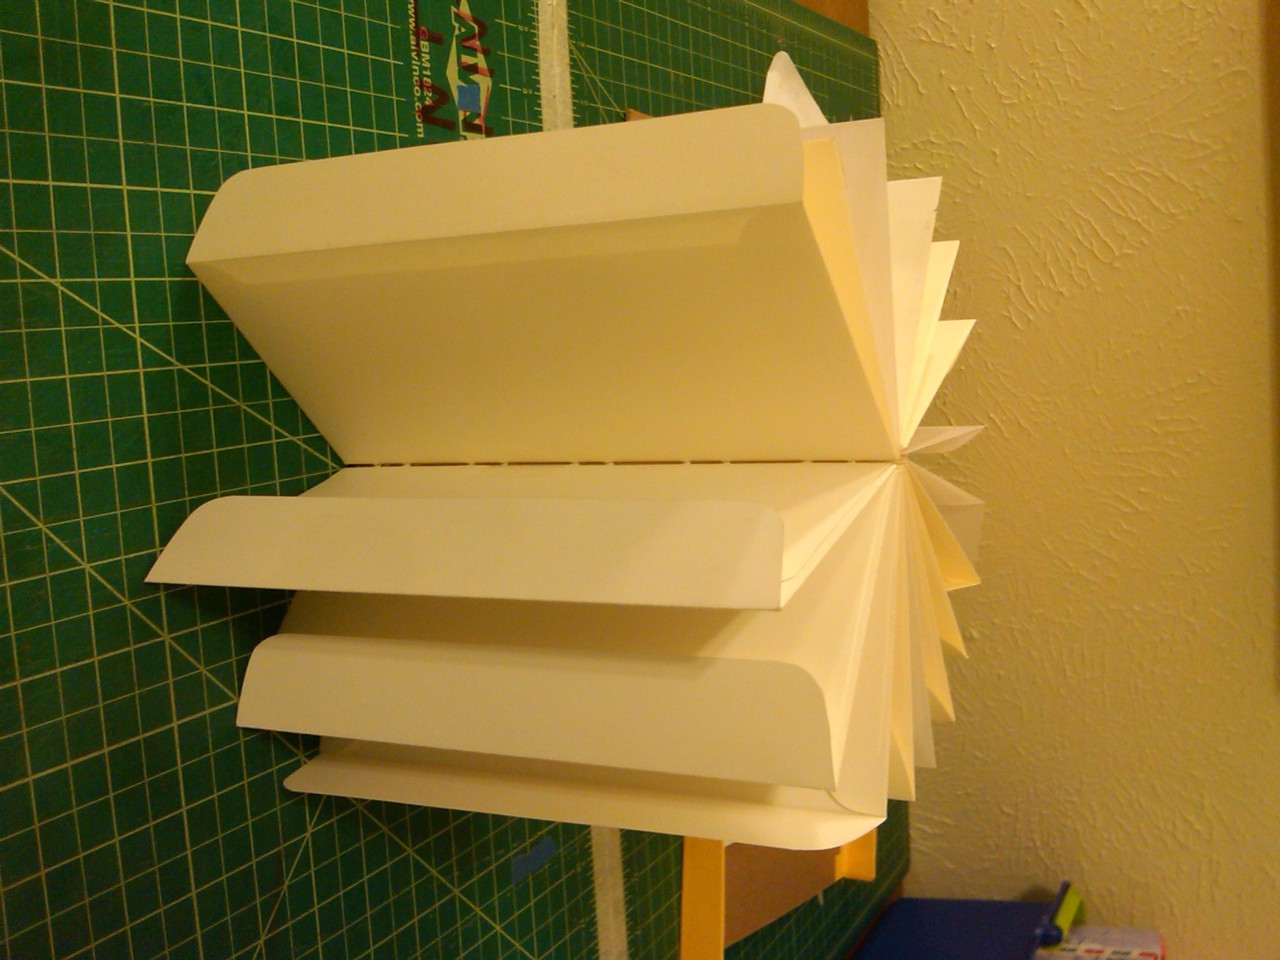 Dummy for coptic bound book made of envelops